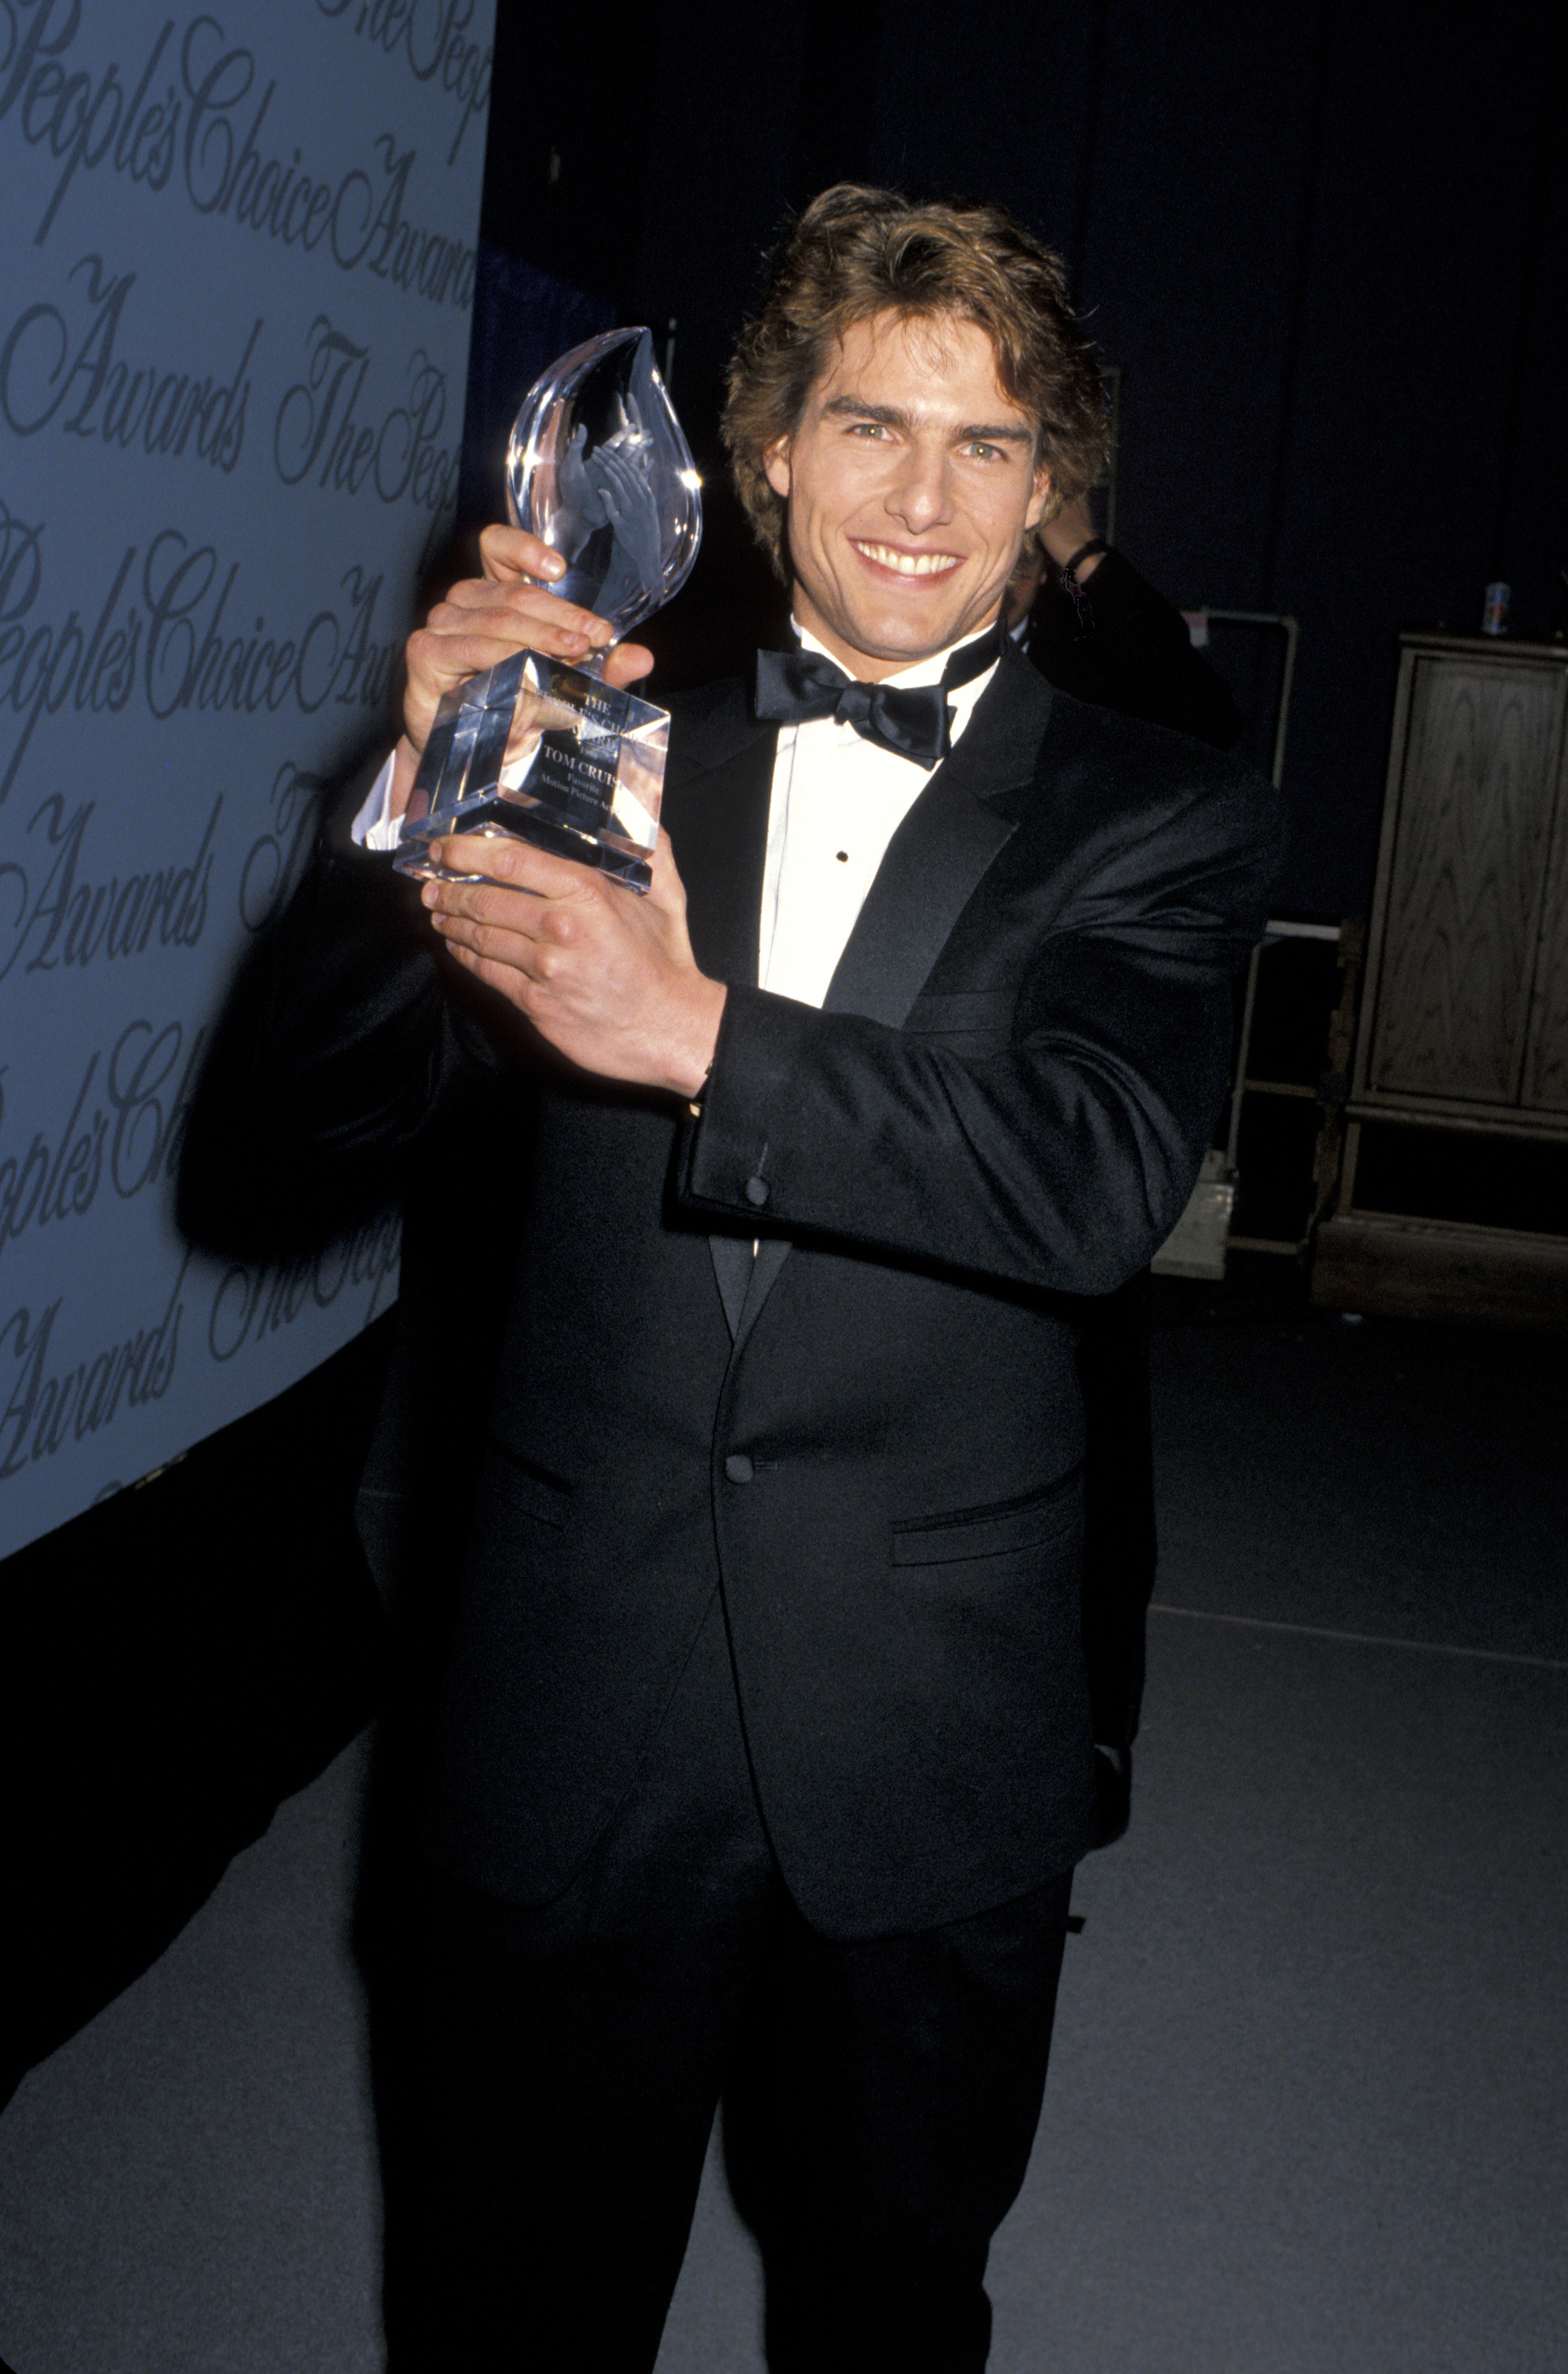 Tom Cruise during the 16th Annual People's Choice Awards at Universal Ampitheater in Los Angeles on March 11, 1990.